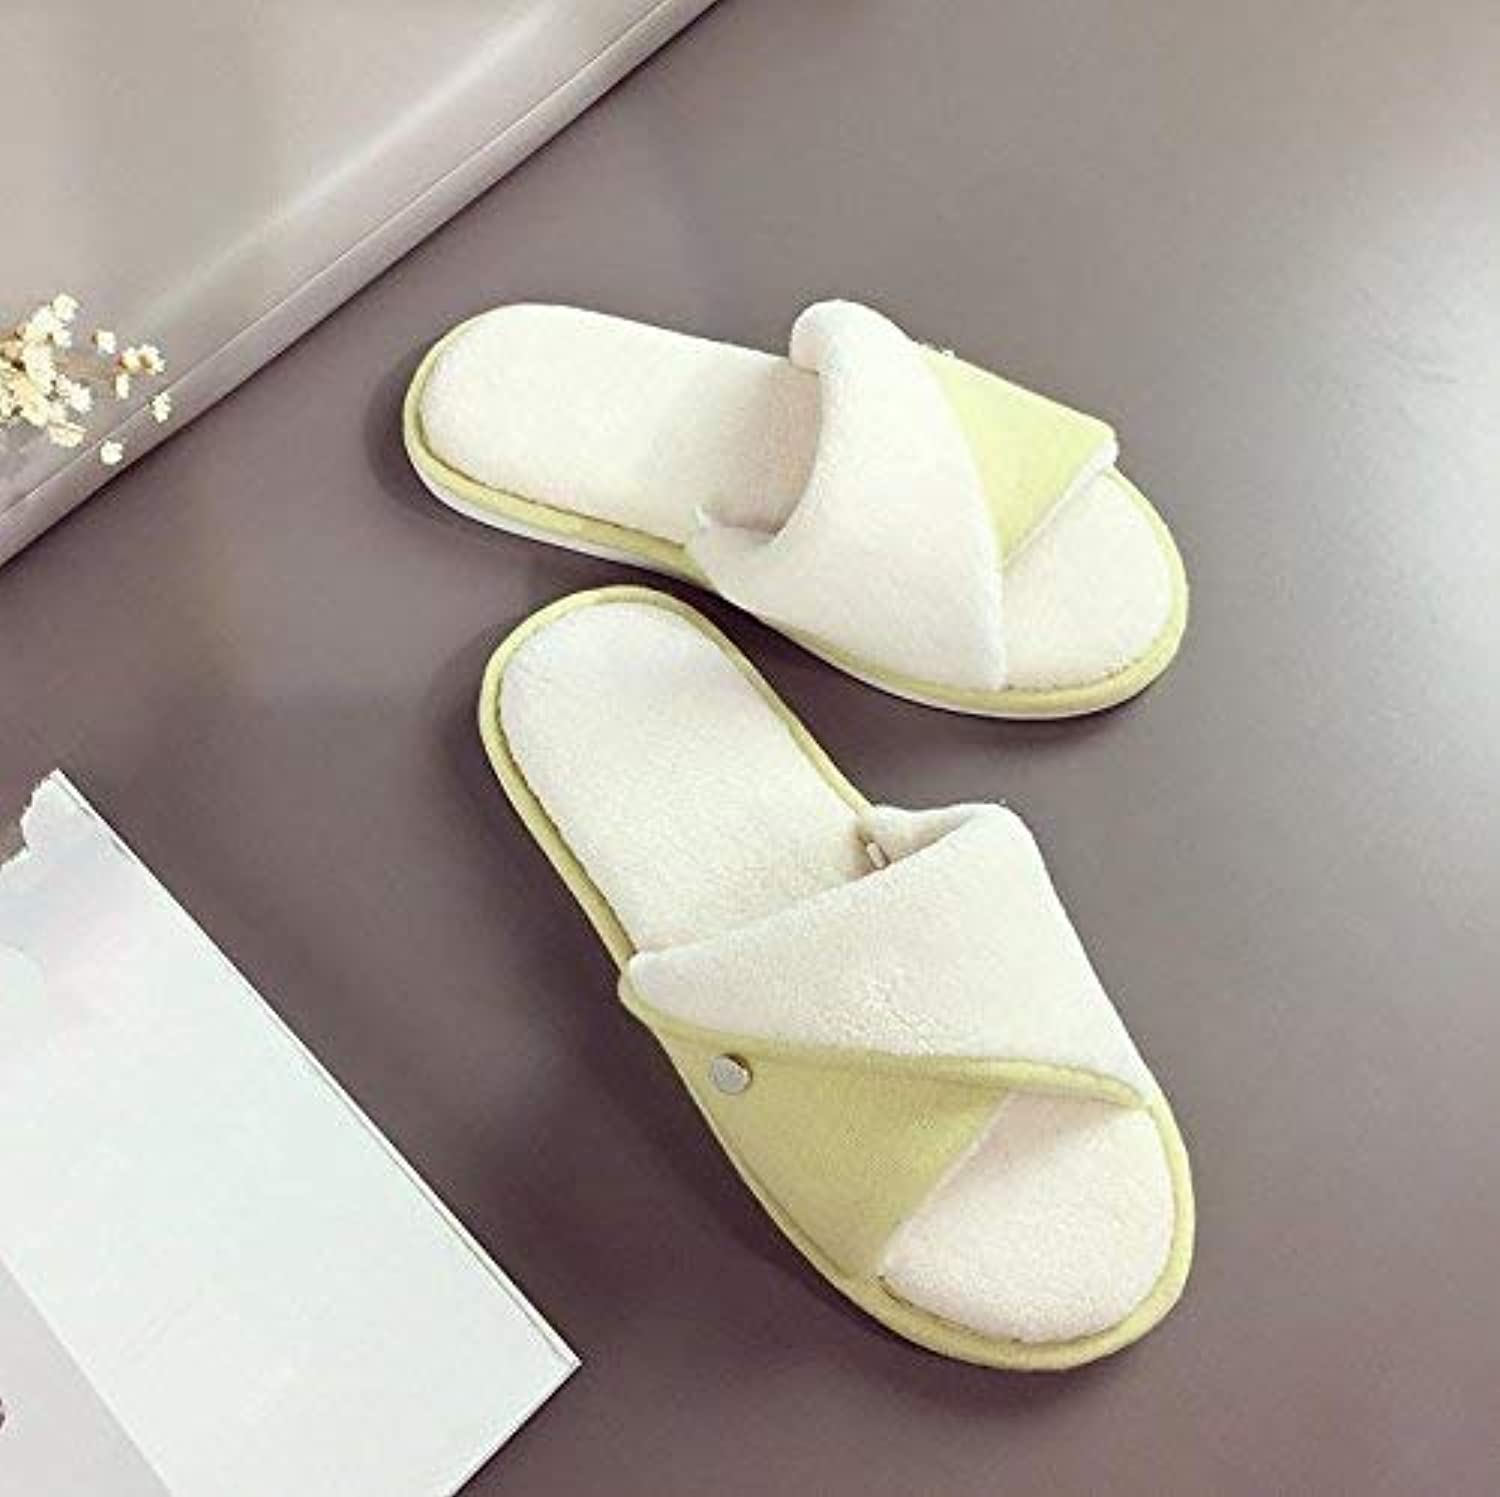 GouuoHi Womens Slippers Ladies Casual Cotton Slippers Home Interior Warm Slippers Yellow Solid color Simple Style Super Soft Plush Comfortable Slippers